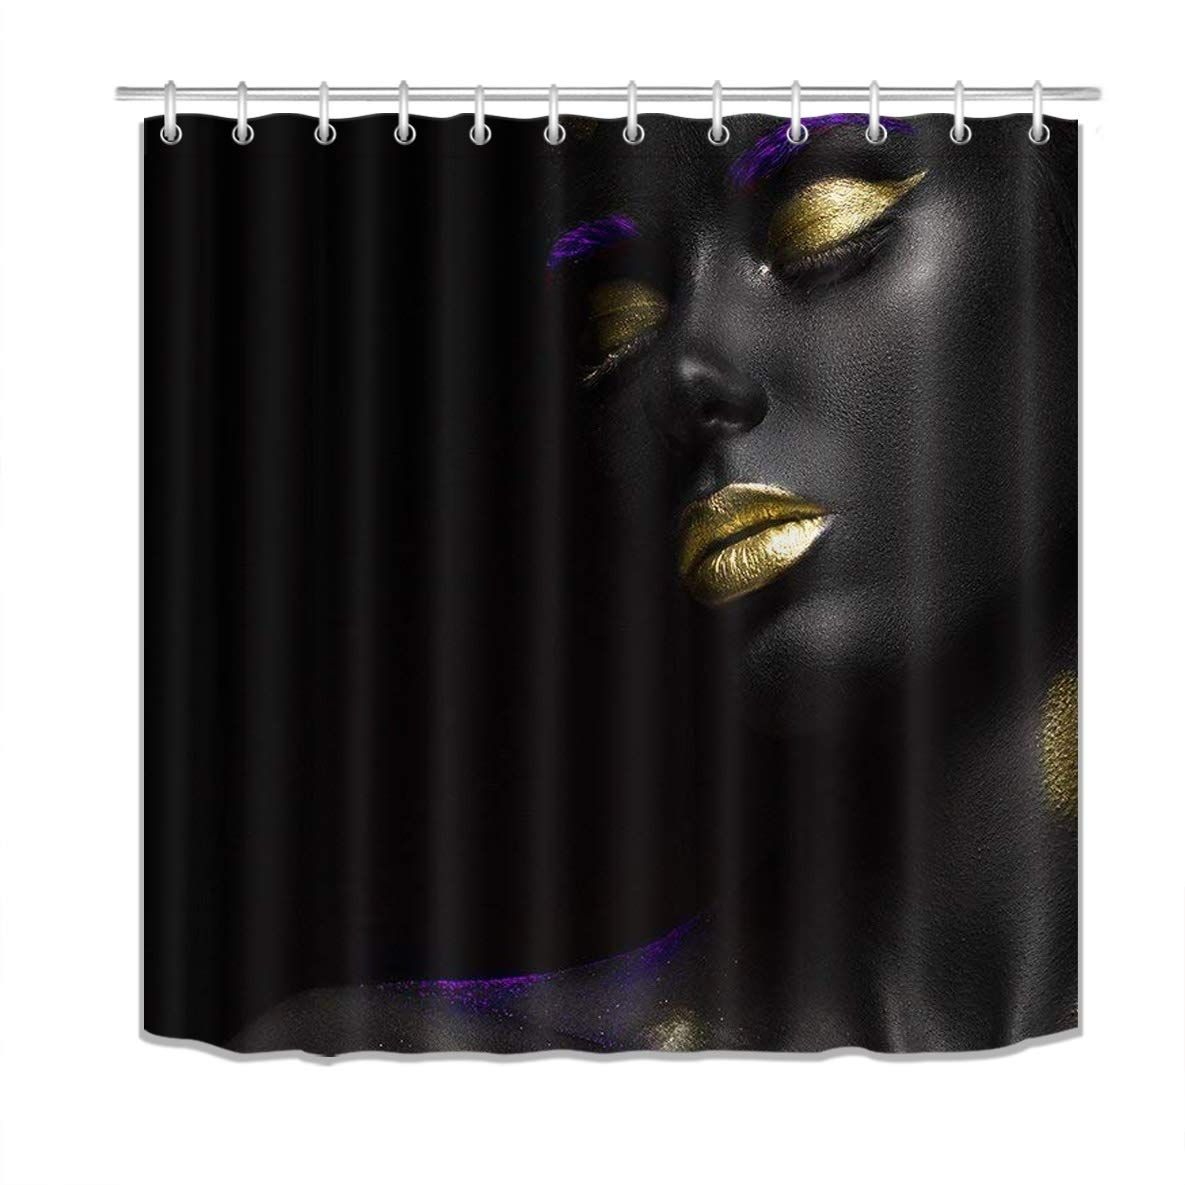 20 60 Lb Afrocentric Shower Curtain 3d Printing Gold Lips